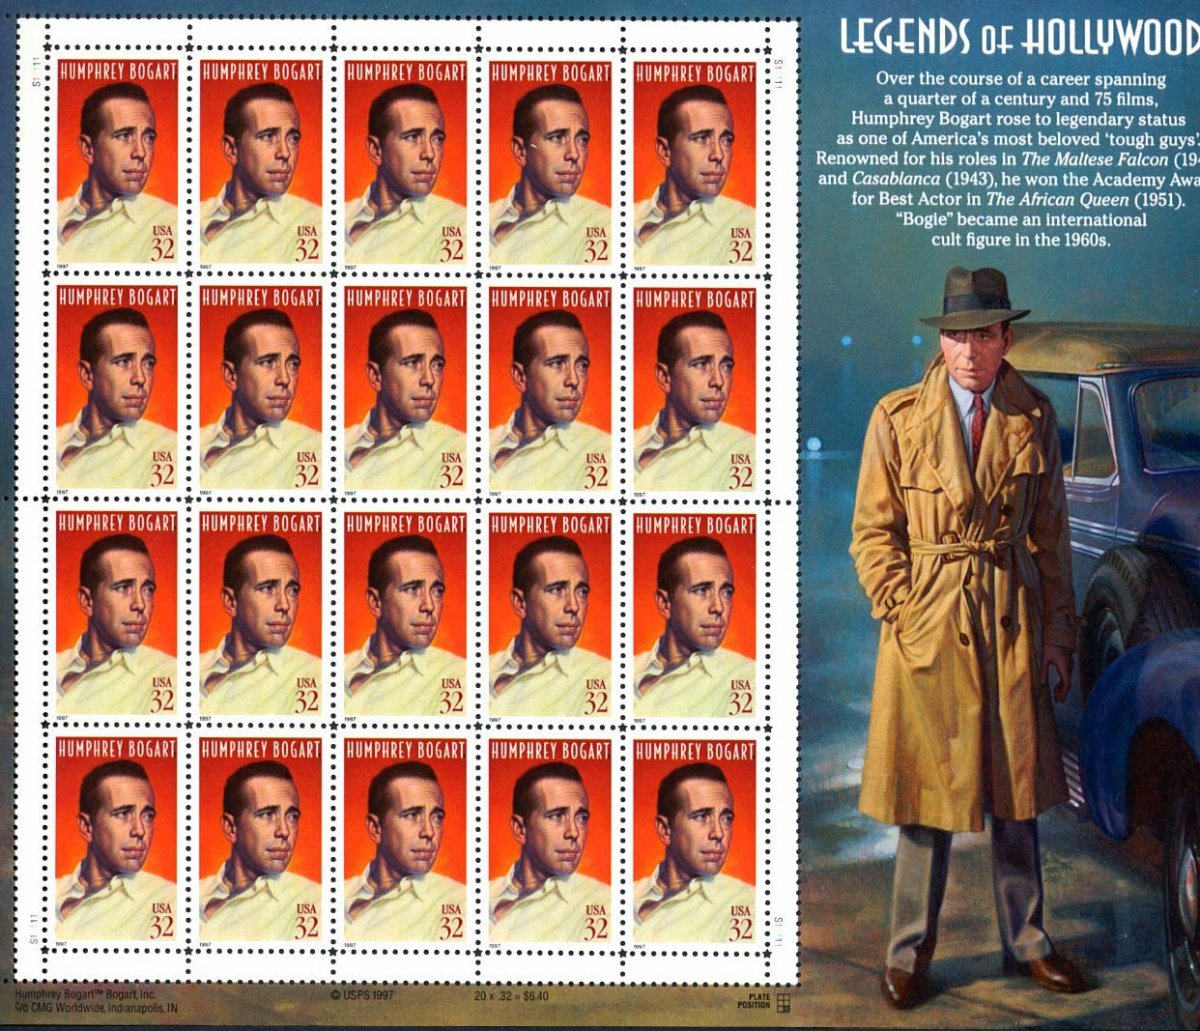 Legends of Hollywood Stamp Series | HobbyLark